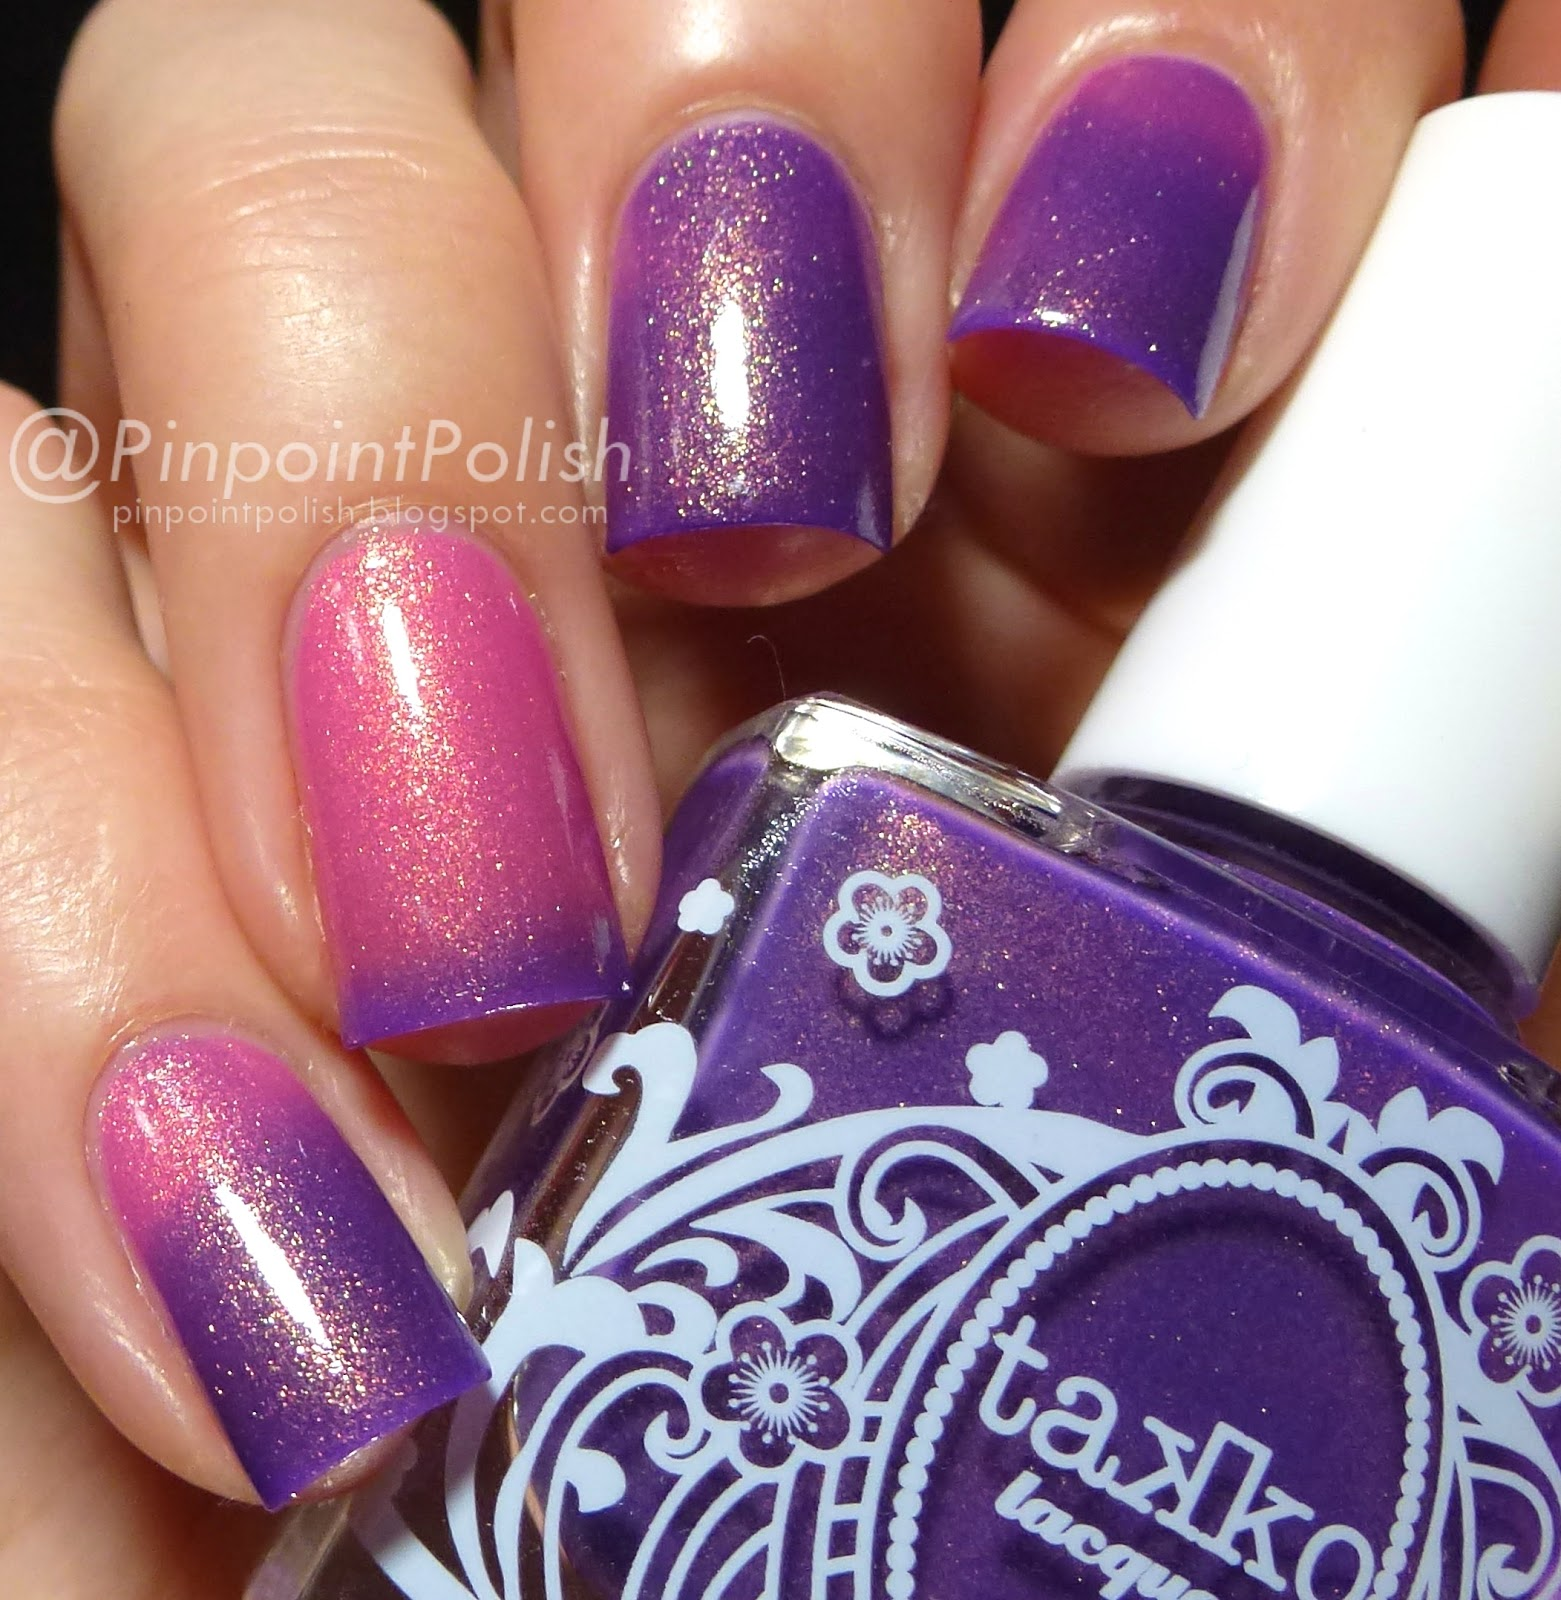 Cheshire cat, takko lacquer, swatch